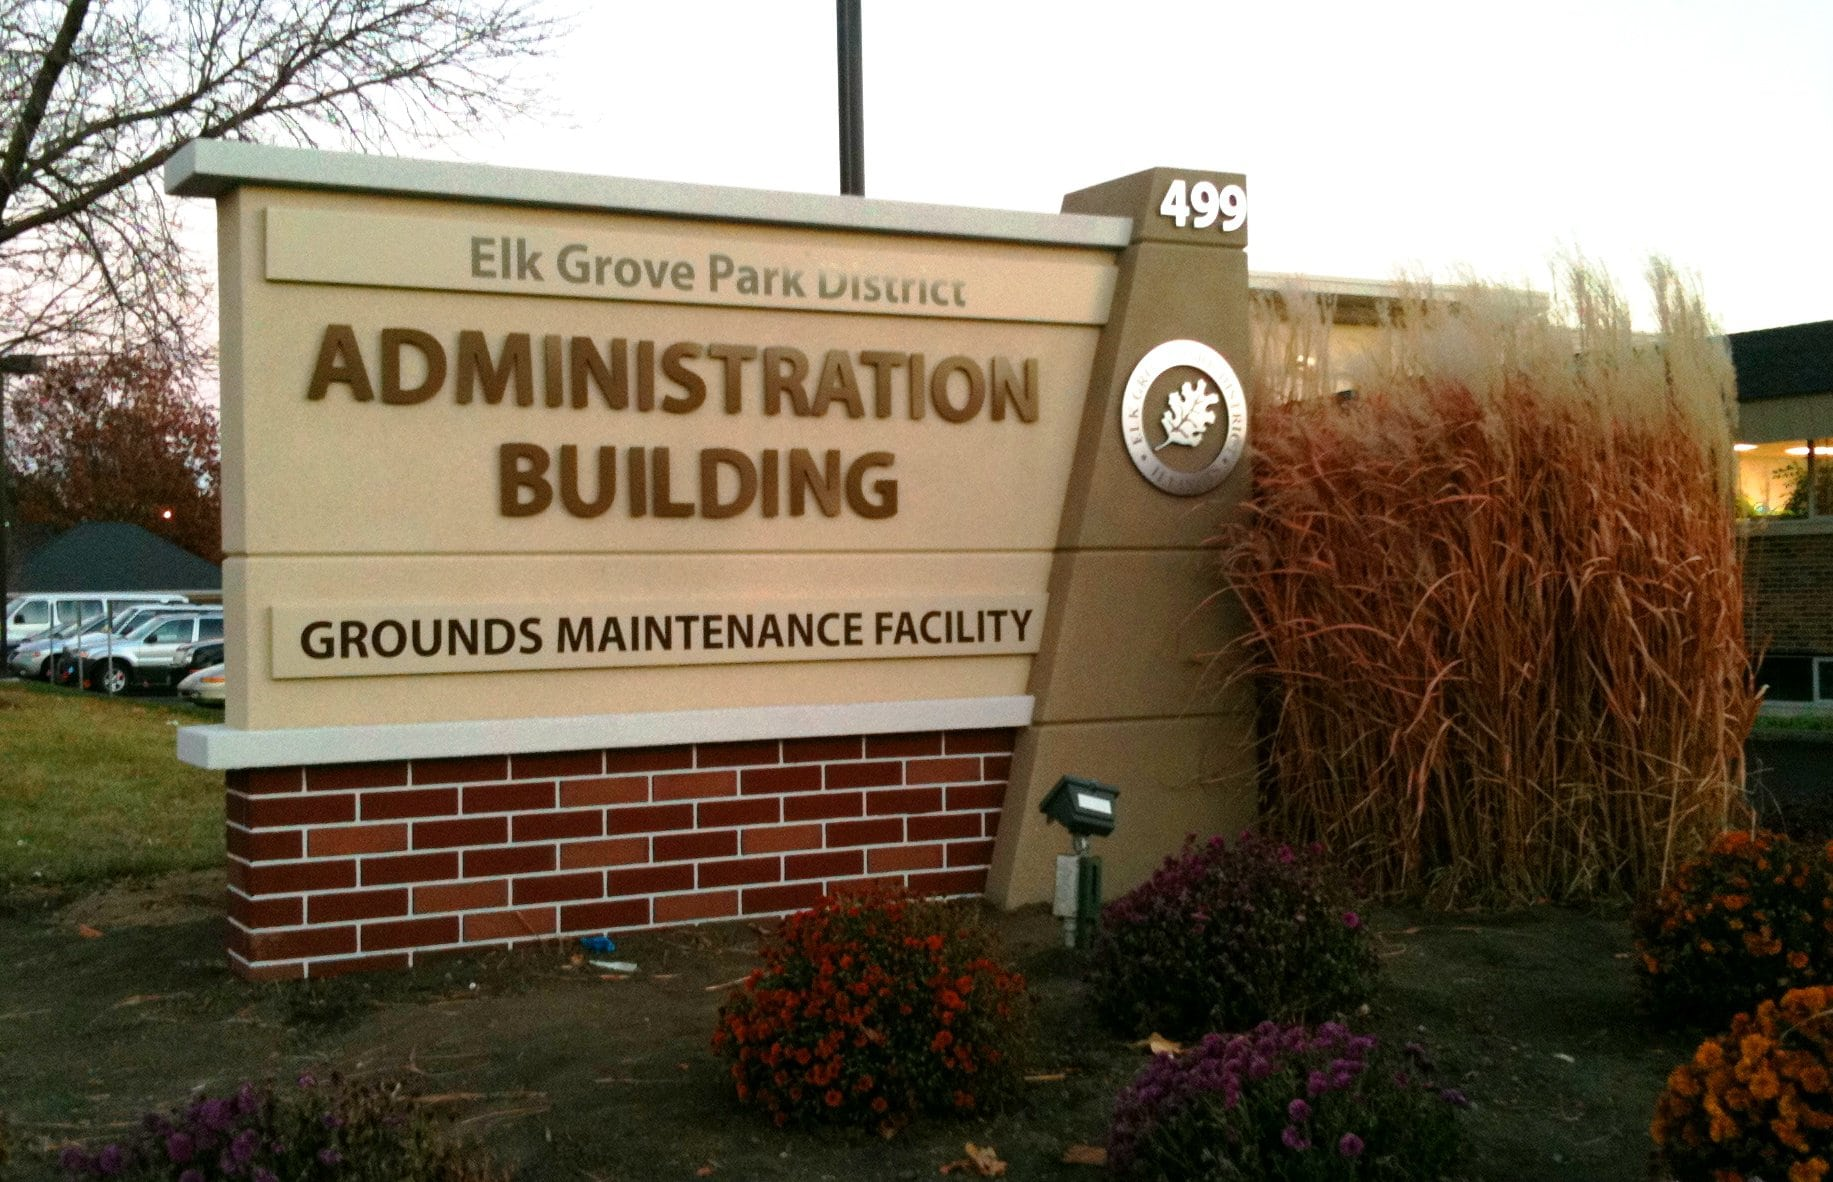 Elk Grove Park District Administration Building Sign